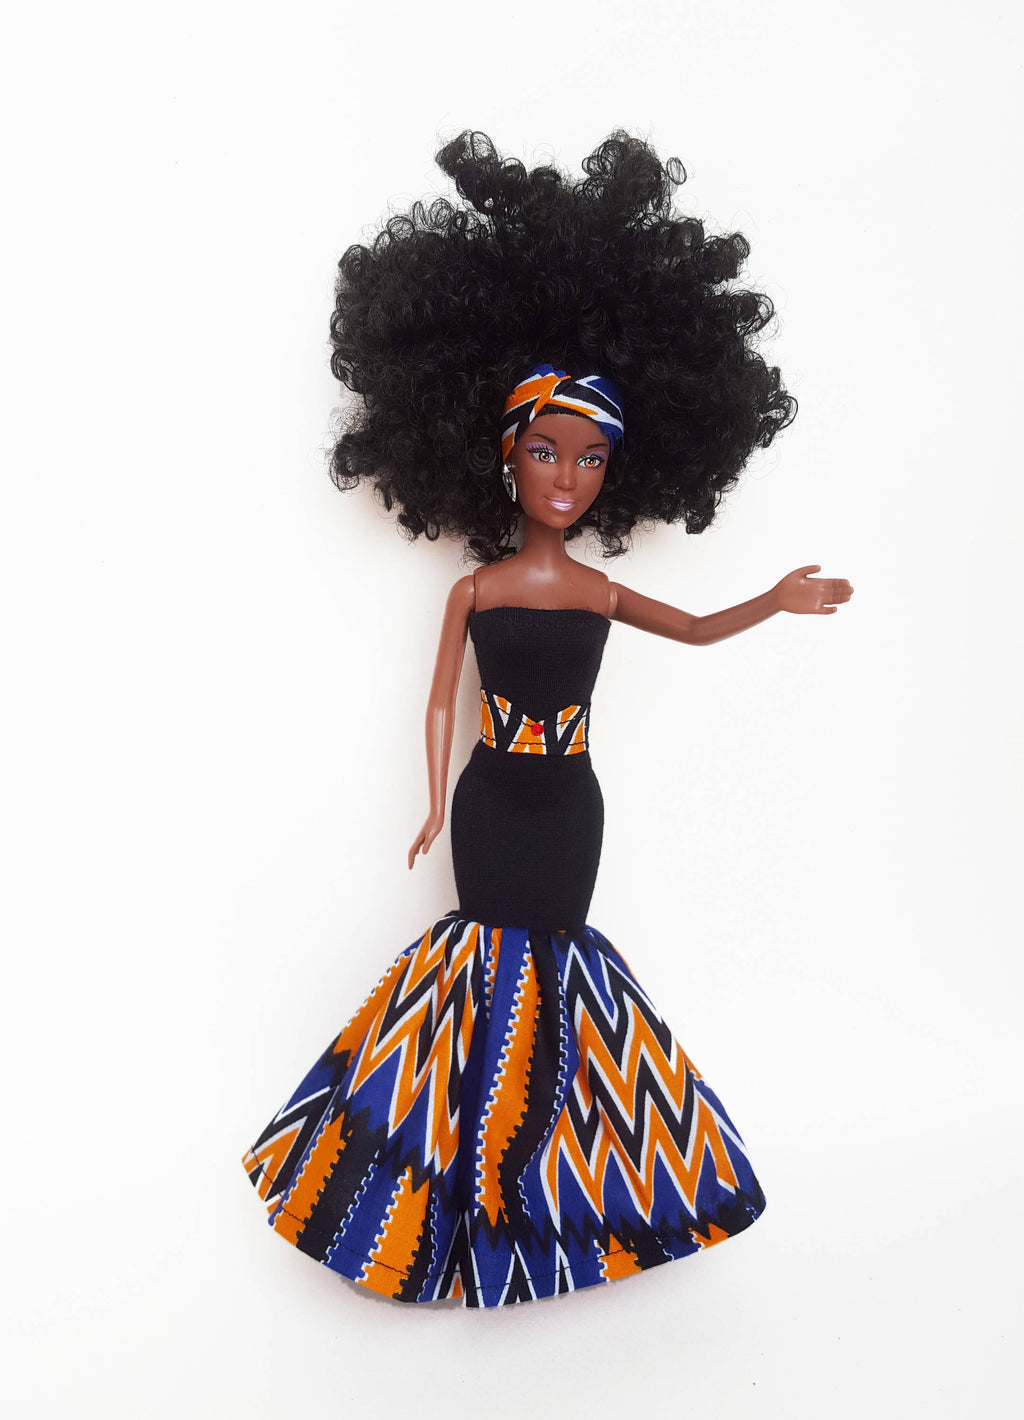 Black Doll Nana Kuti Doll